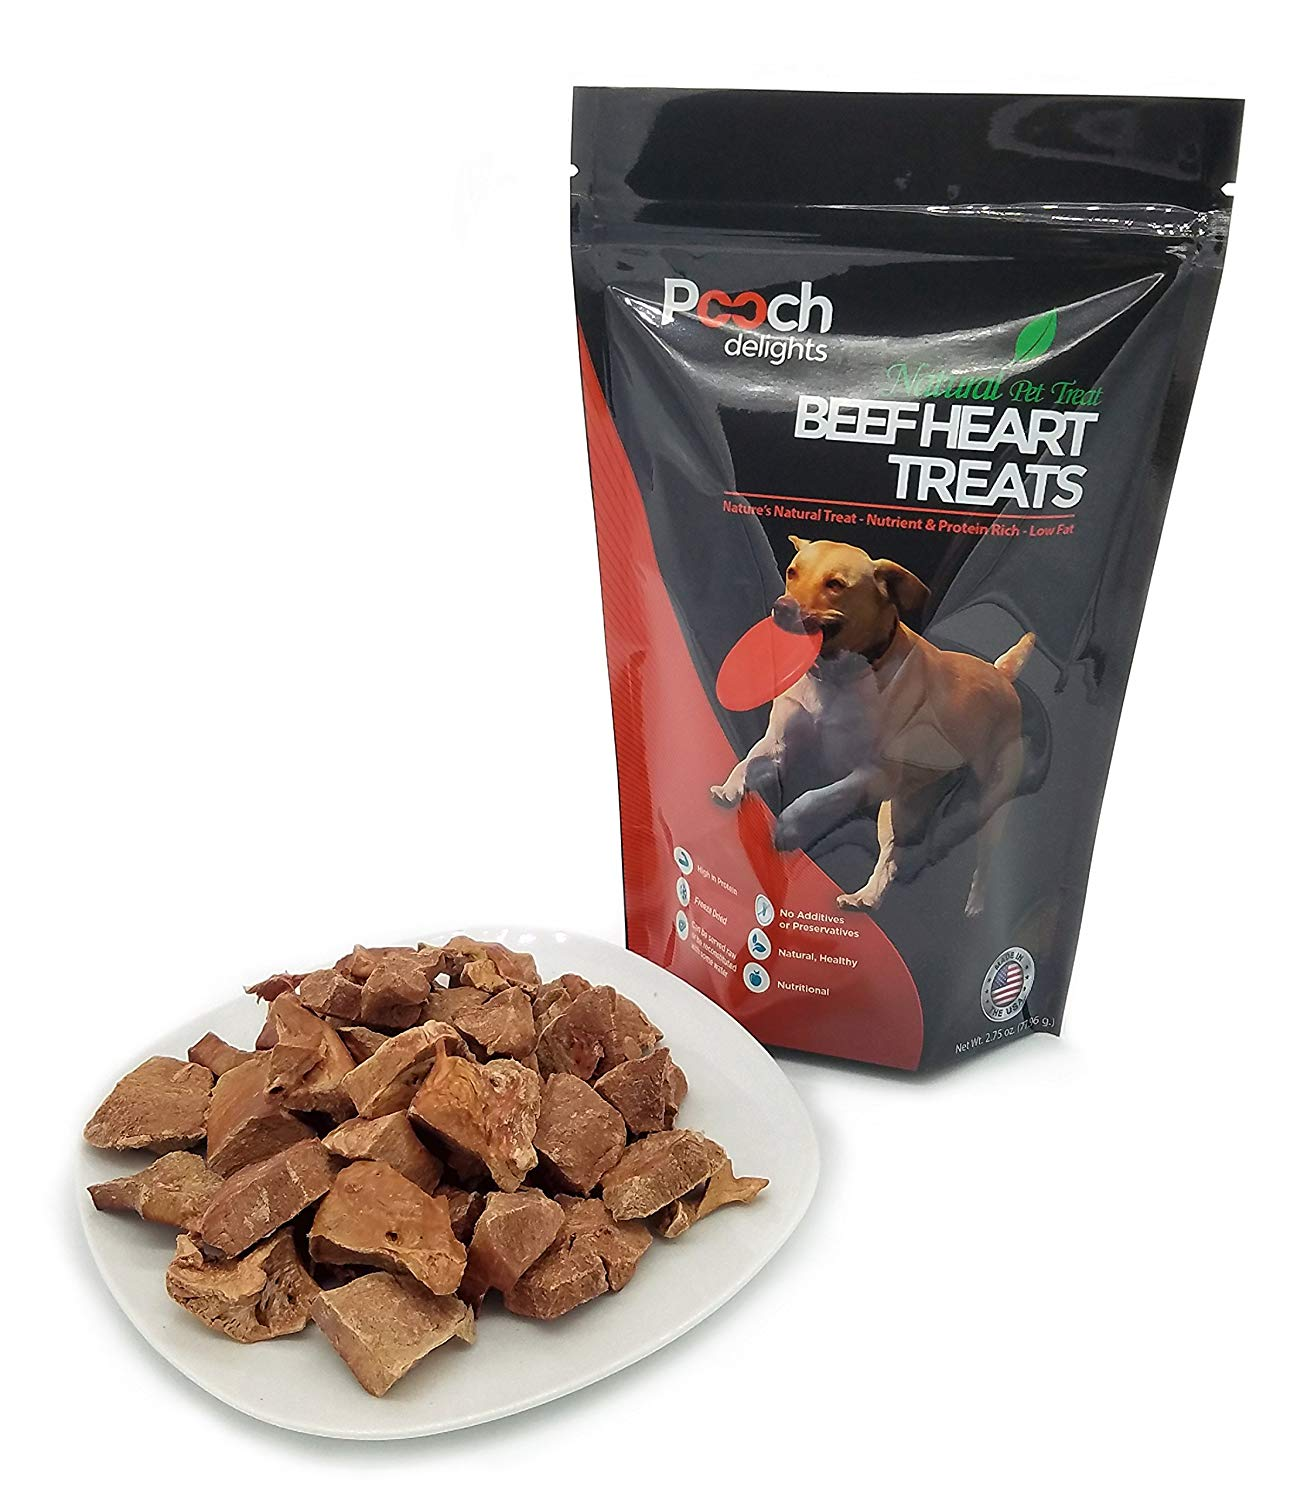 New Natural Dog Treats To Improve Dogs' Health